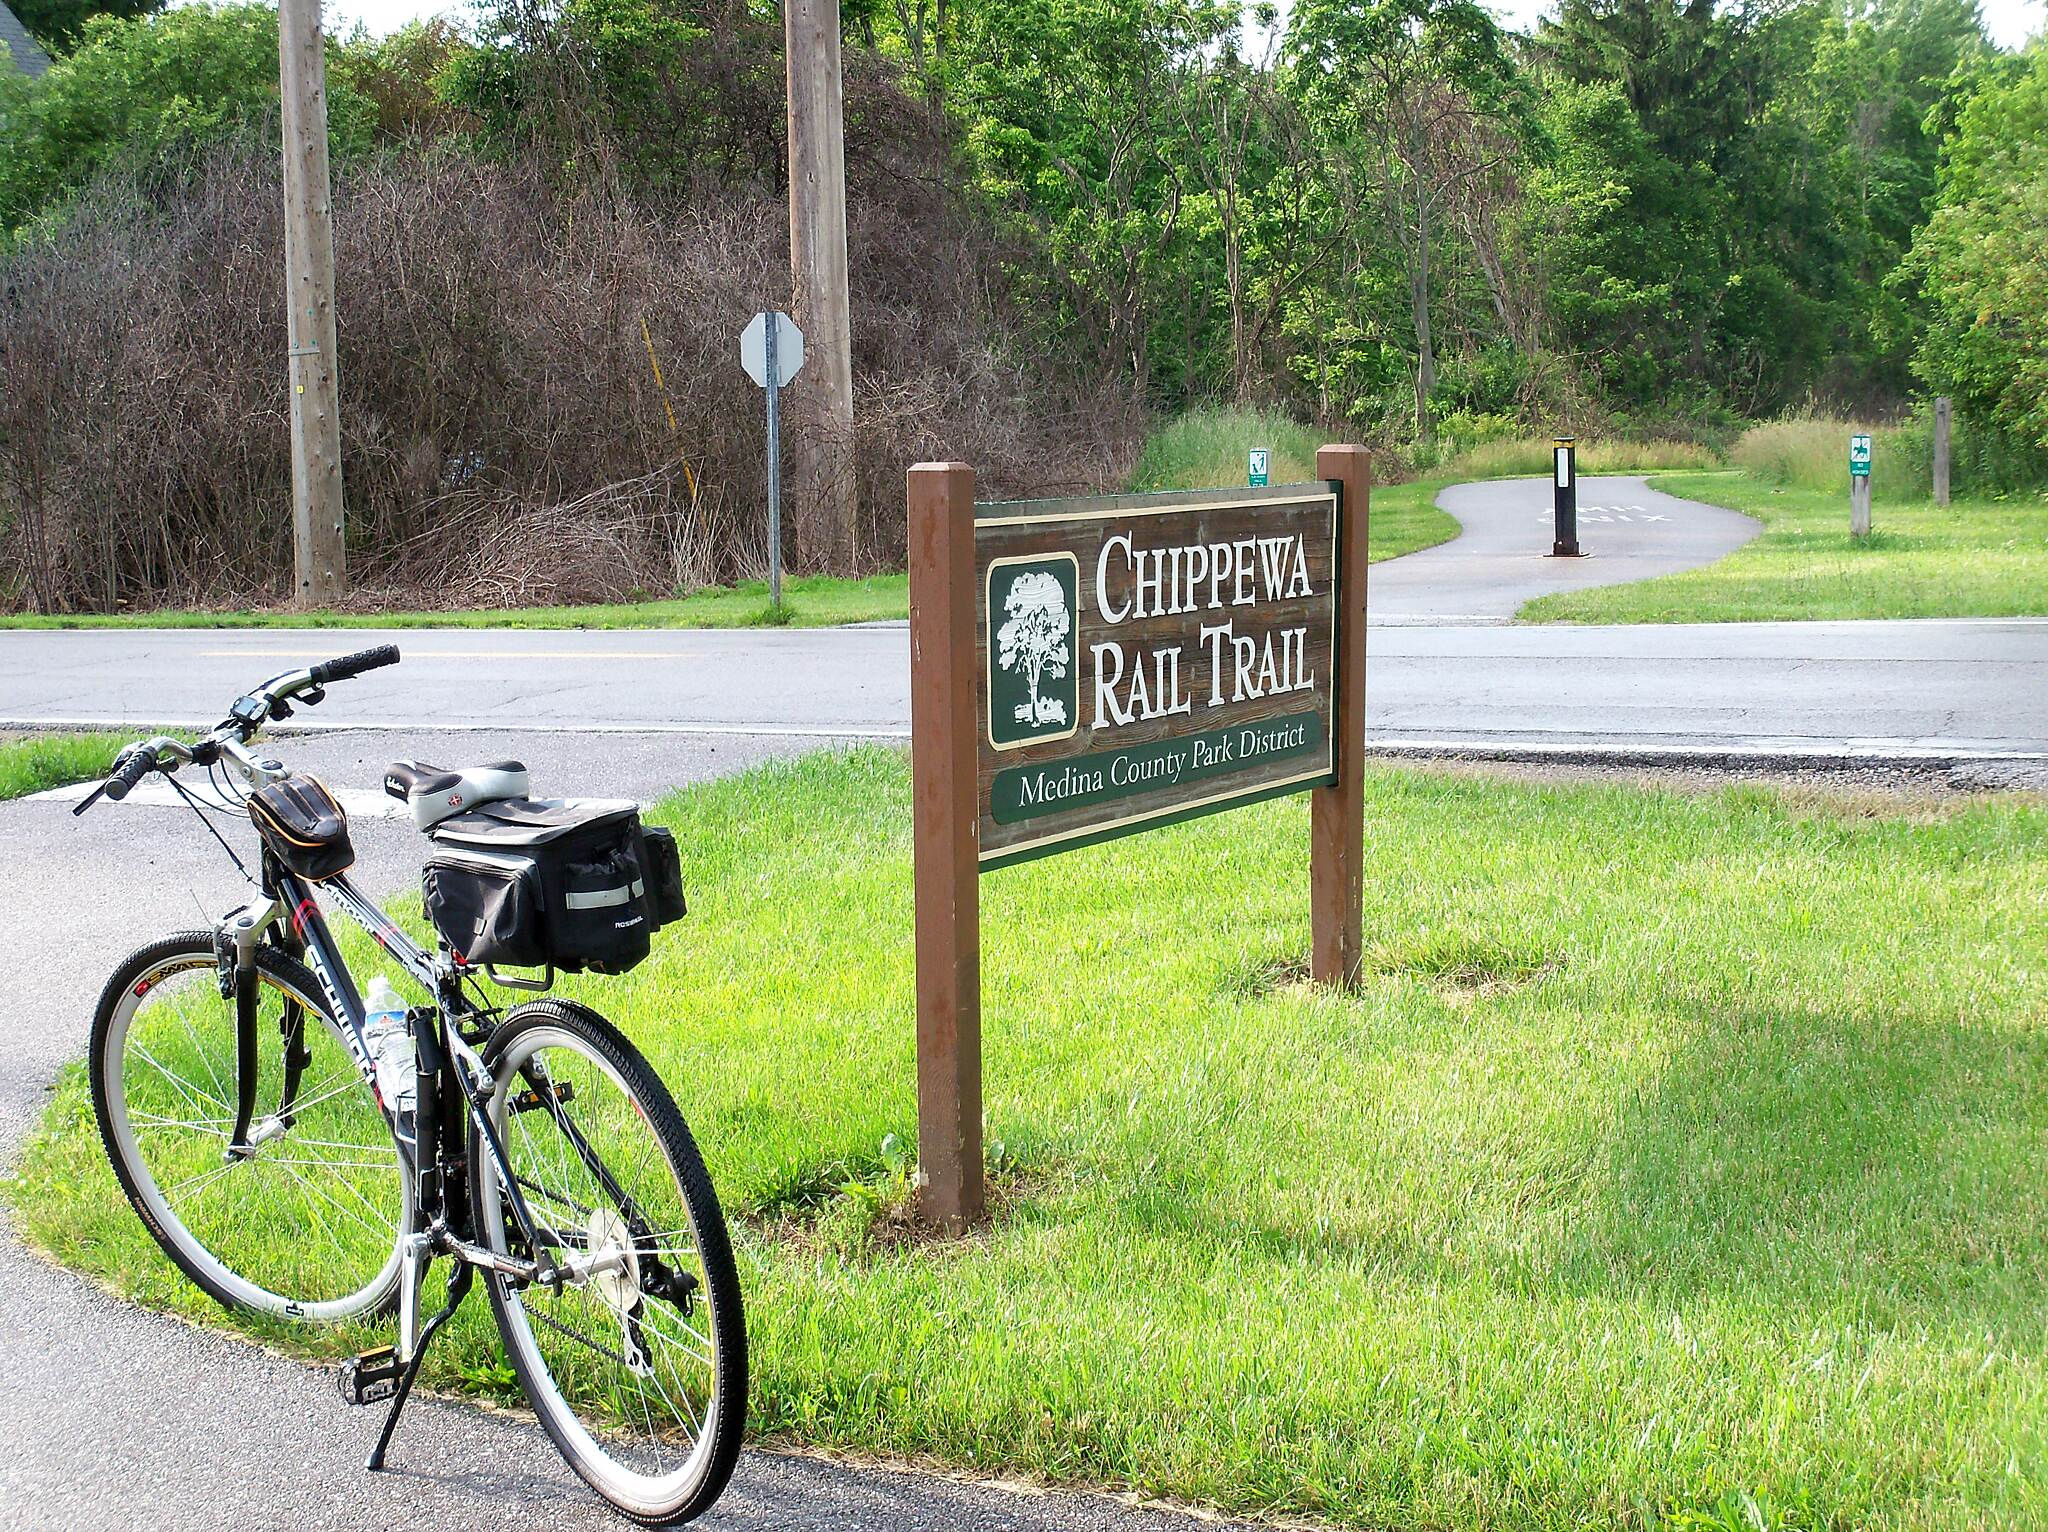 Chippewa Rail-Trail Start of Trail